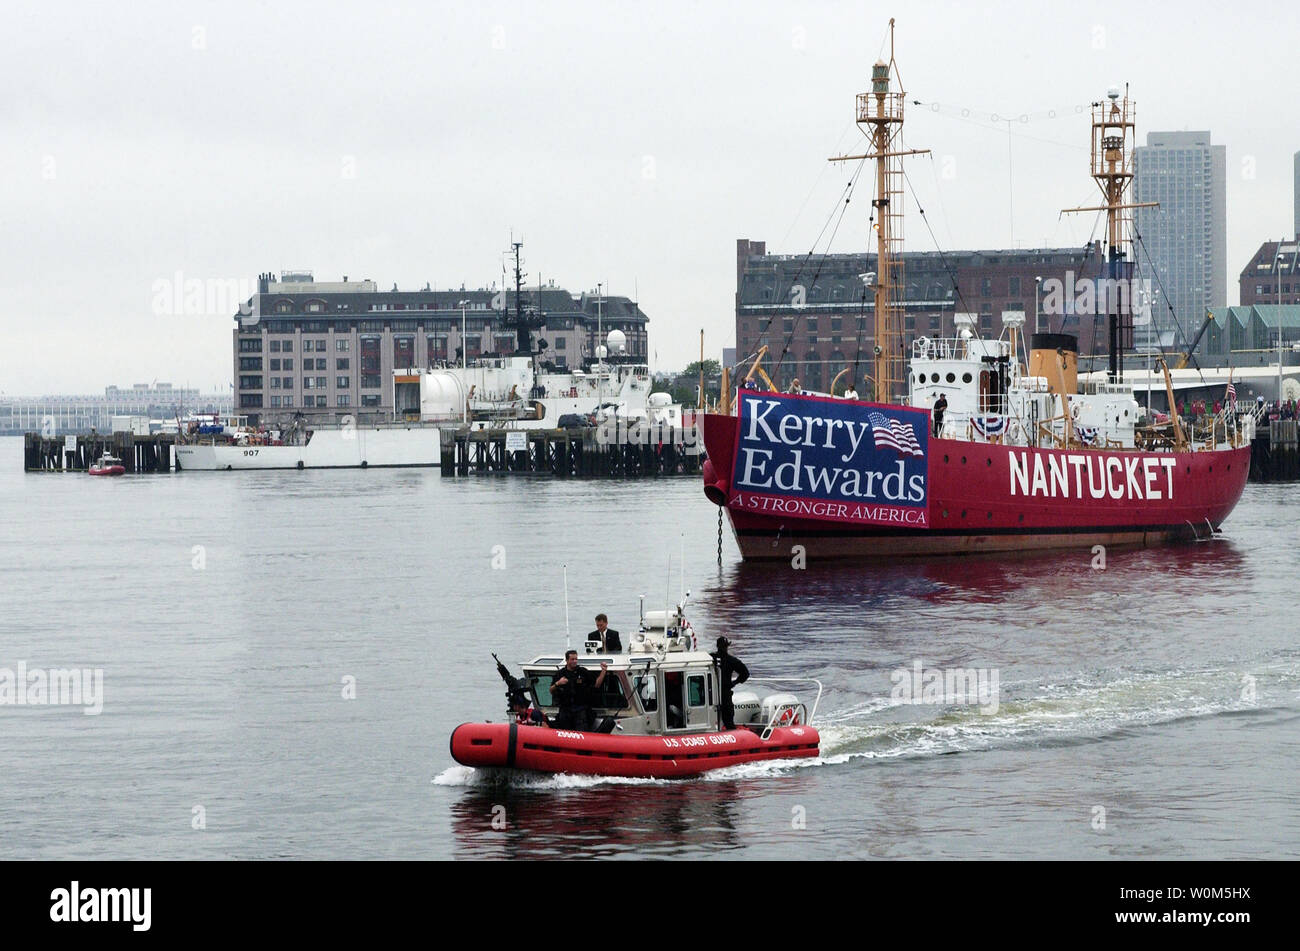 Senator John Kerry arrives on a boat to a rally on July 28, 2004 for the Democratic National Convention, in Boston.  The Coast Guard, Boston State Police, Massachusettes State Police, and Massachusetts Environmental Police are providing waterborne security.  (UPI Photo) - Stock Image